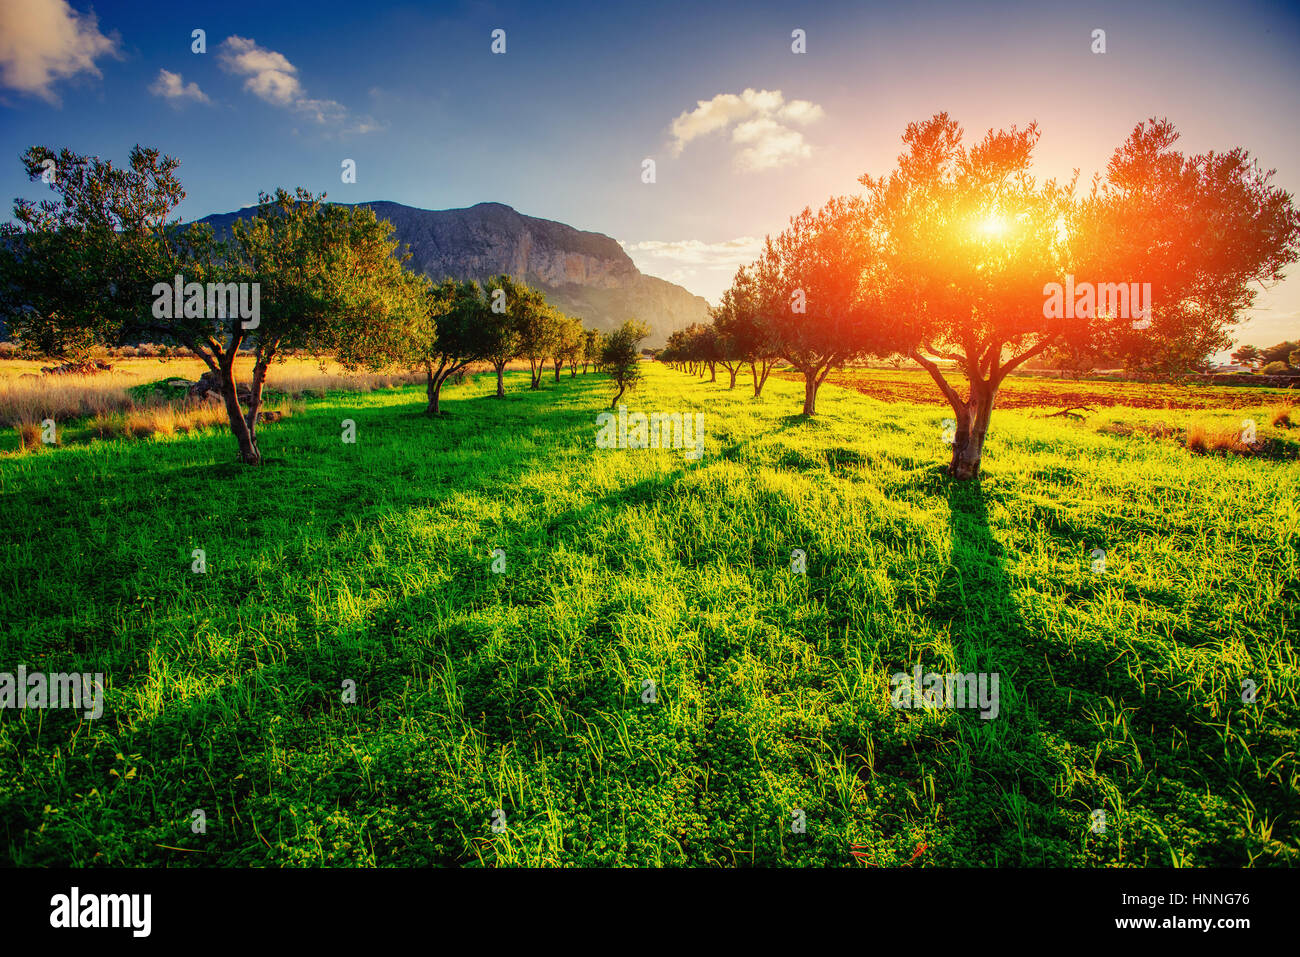 Tree shadow with sunset. Sicily. Italy. Europe - Stock Image